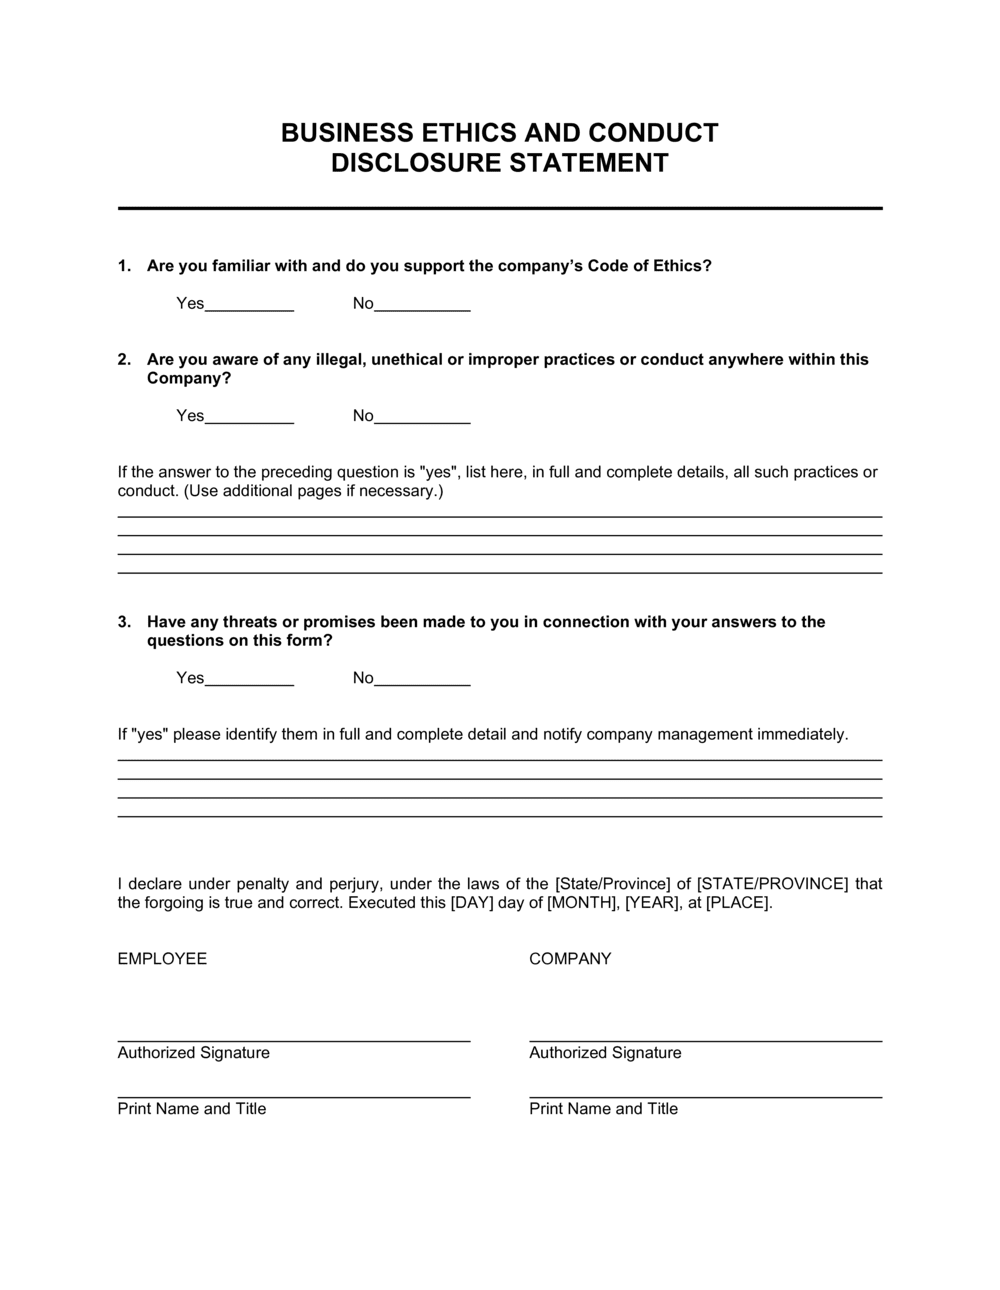 Business-in-a-Box's Business Ethics and Conduct Disclosure Statement Template